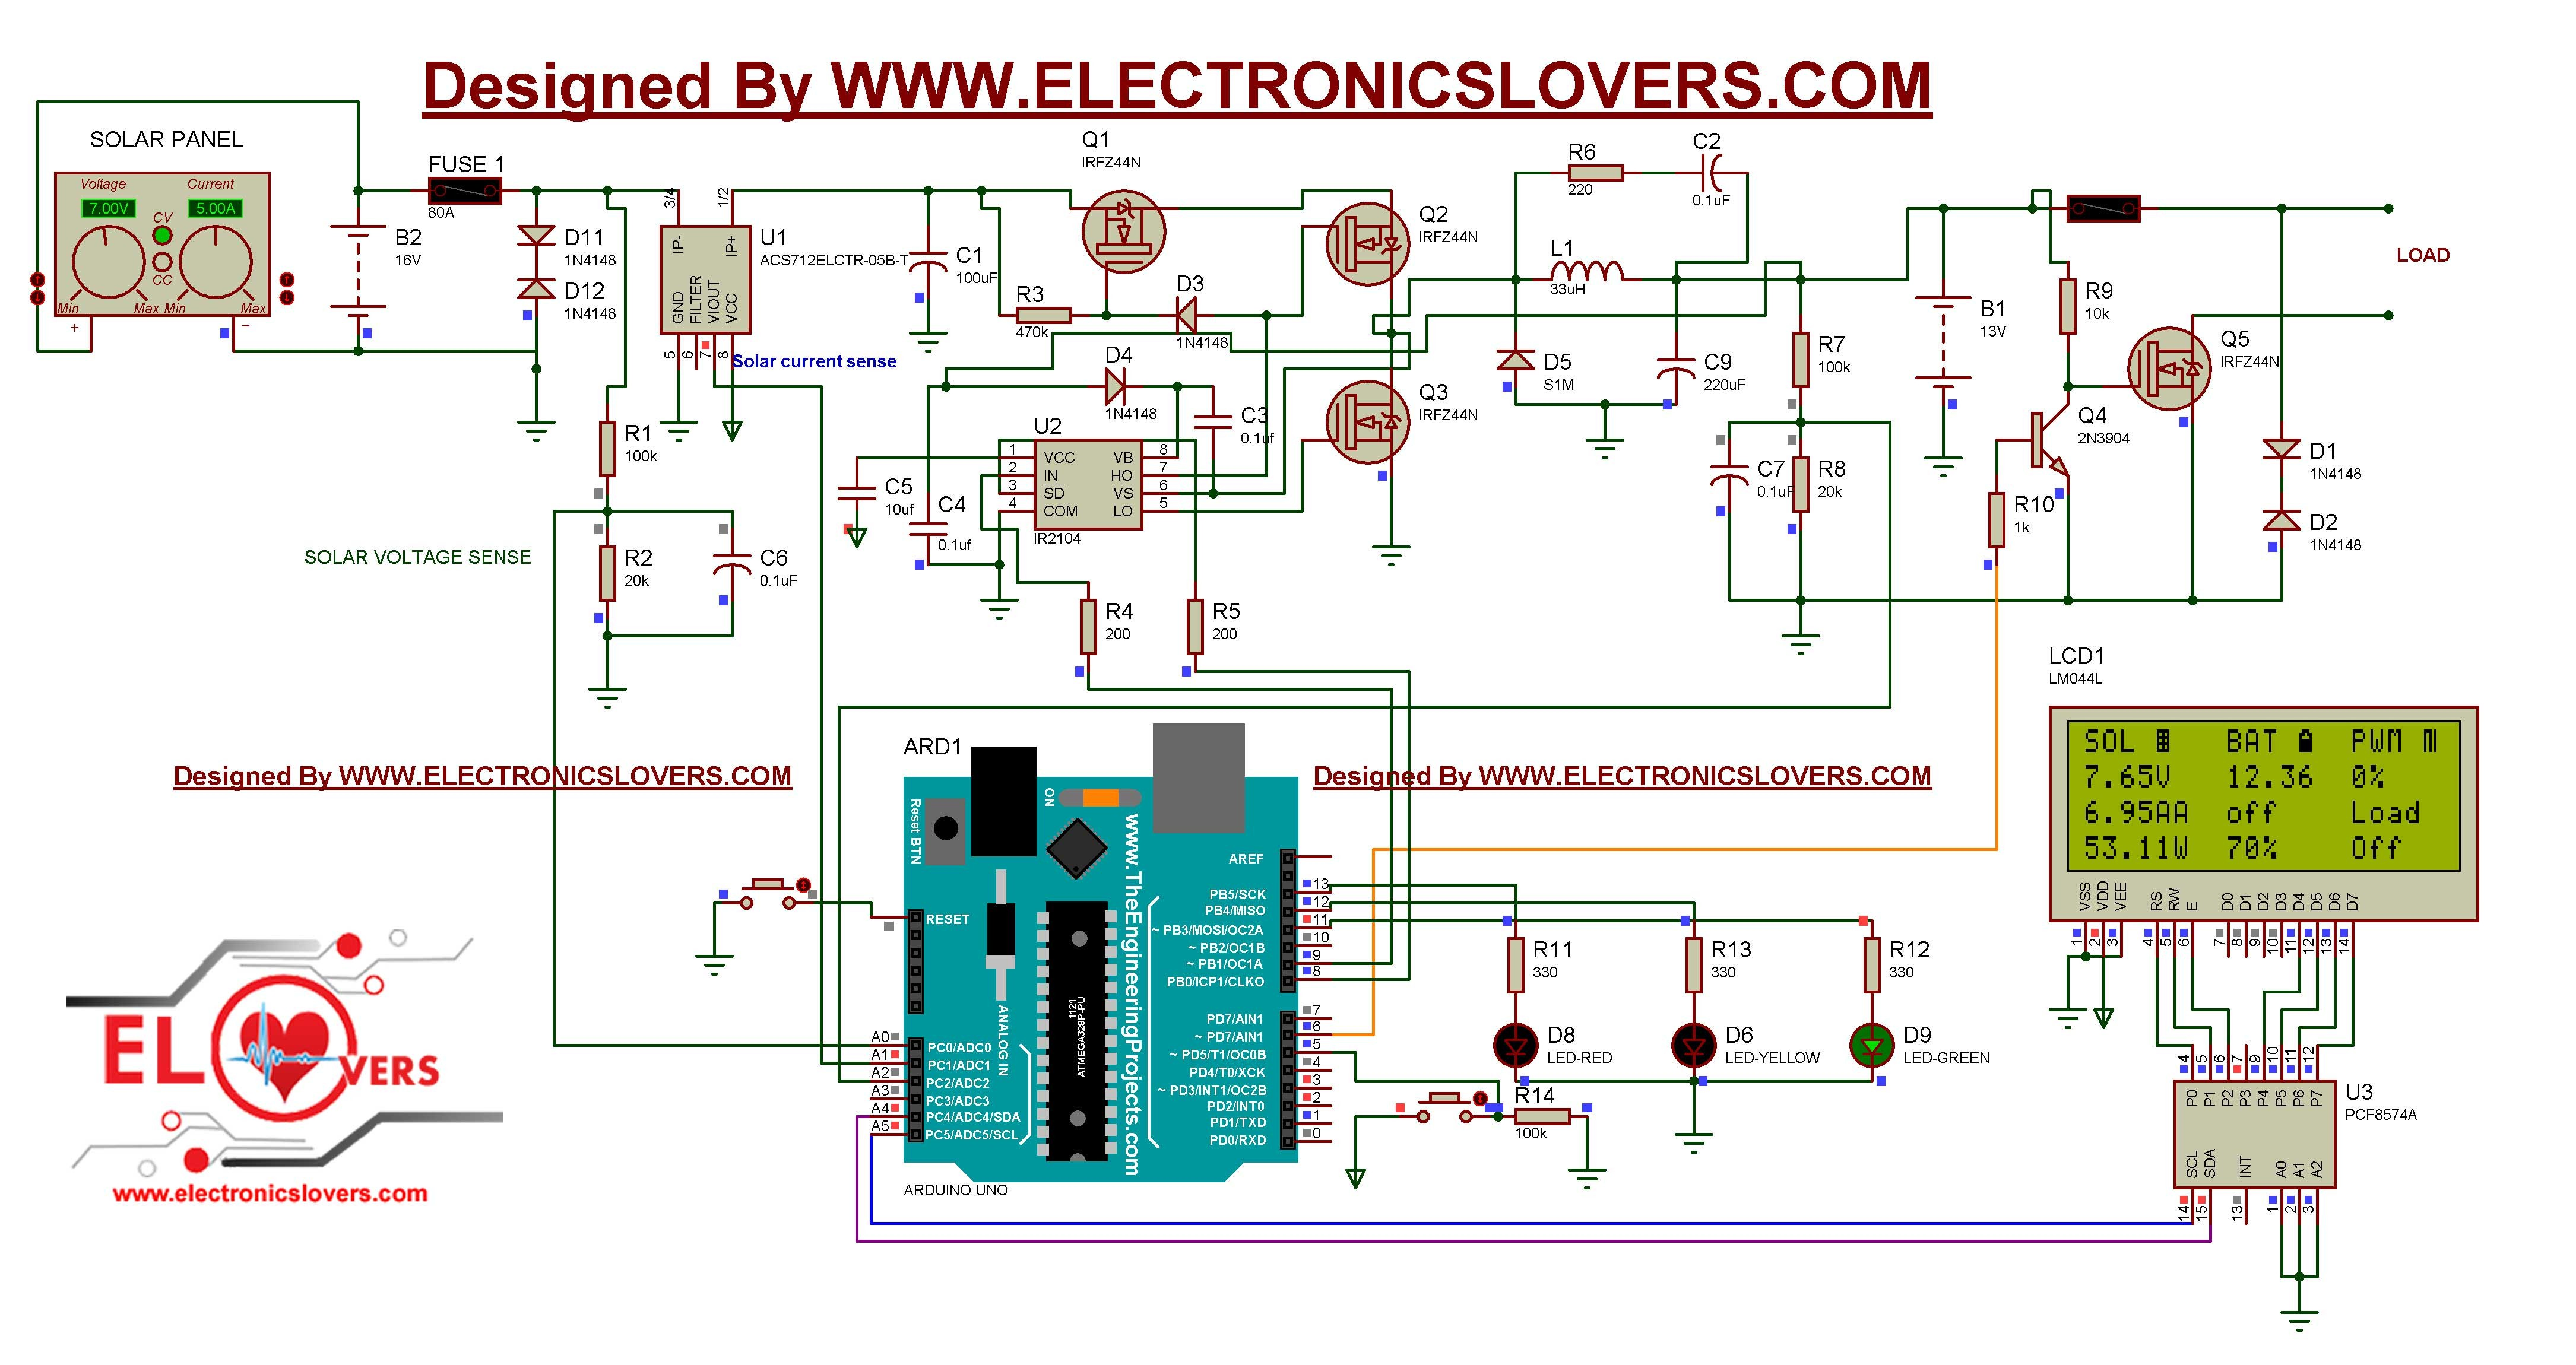 May I know which one is correct schematic circuit for this project